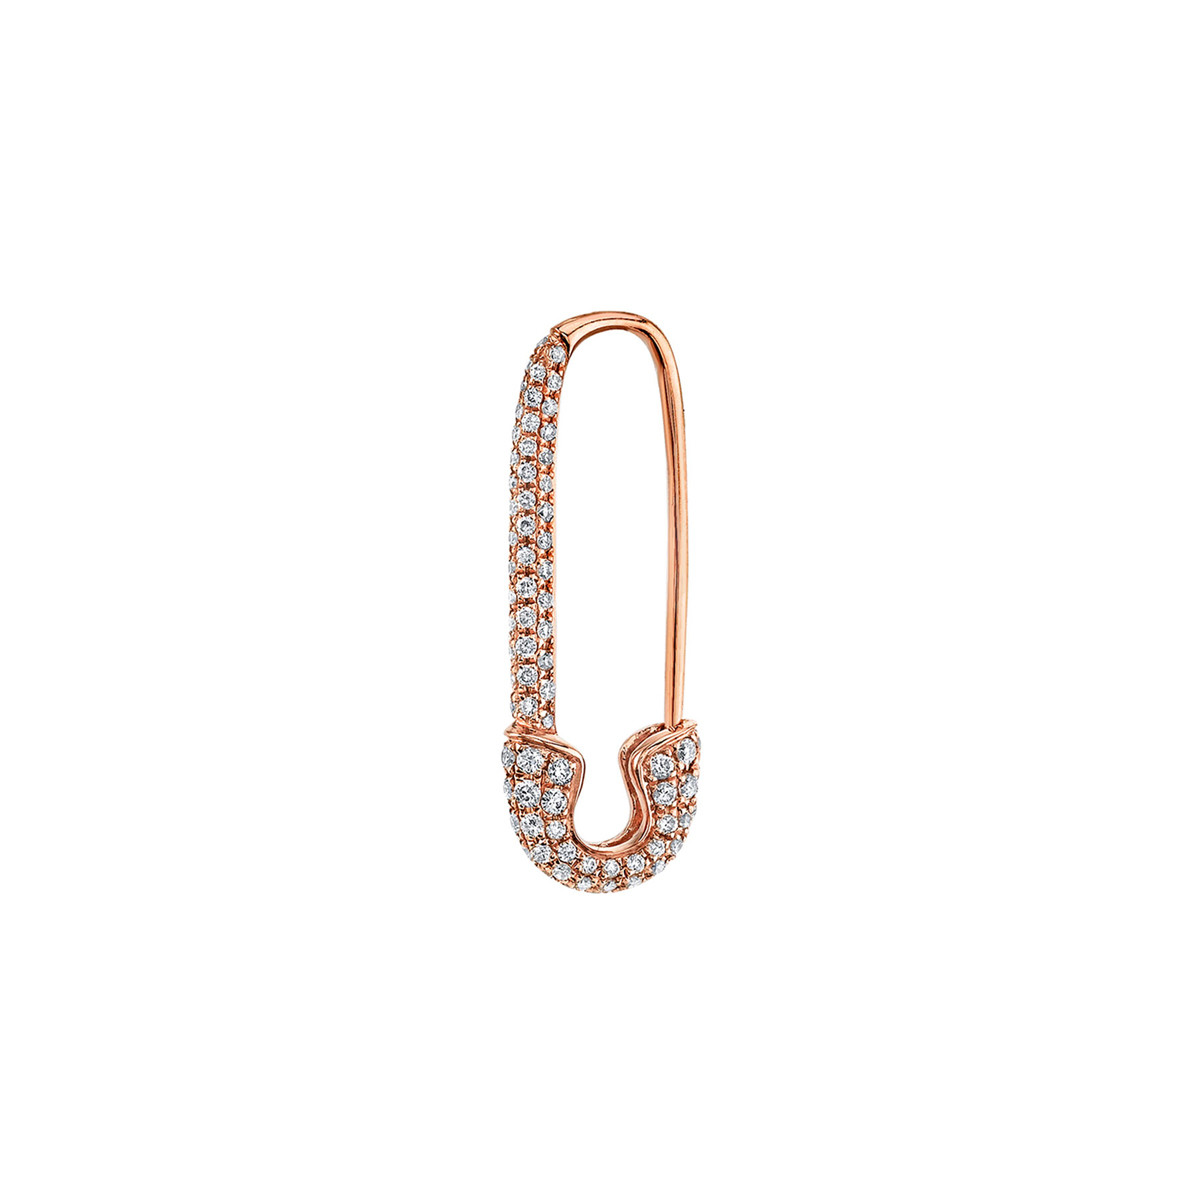 18k Rose Gold & Diamond Safety Pin Earring